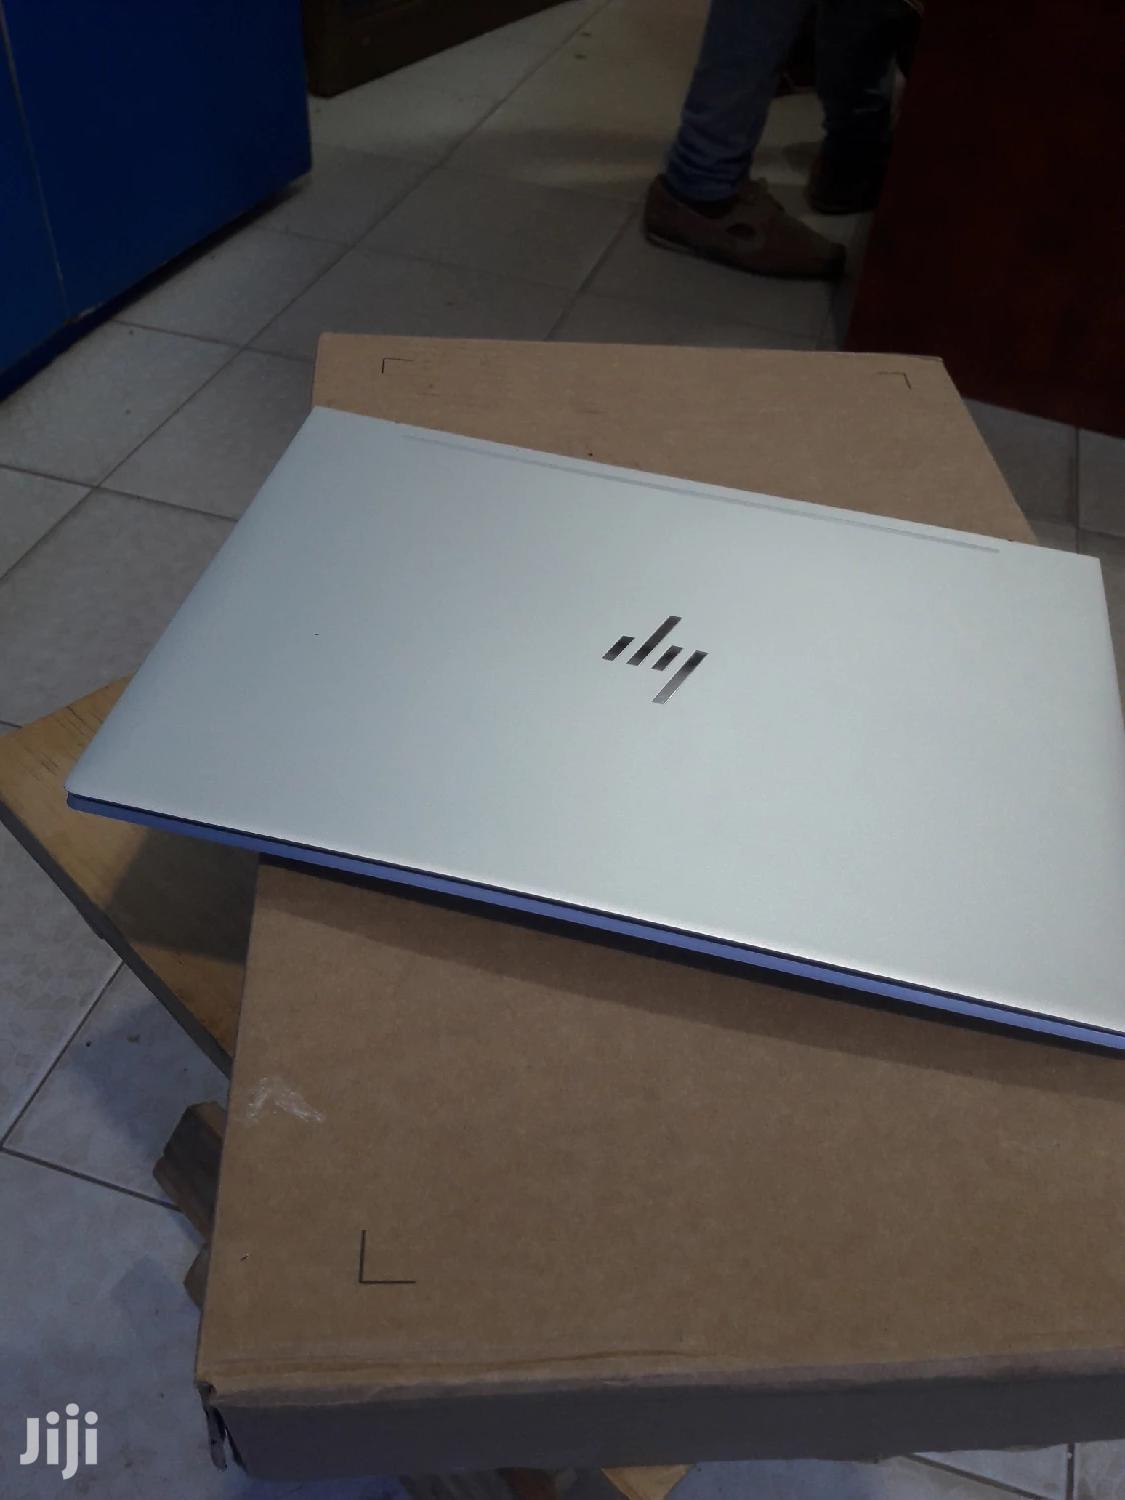 New Laptop HP Envy 13t 8GB Intel Core i5 SSD 256GB | Laptops & Computers for sale in Kampala, Central Region, Uganda